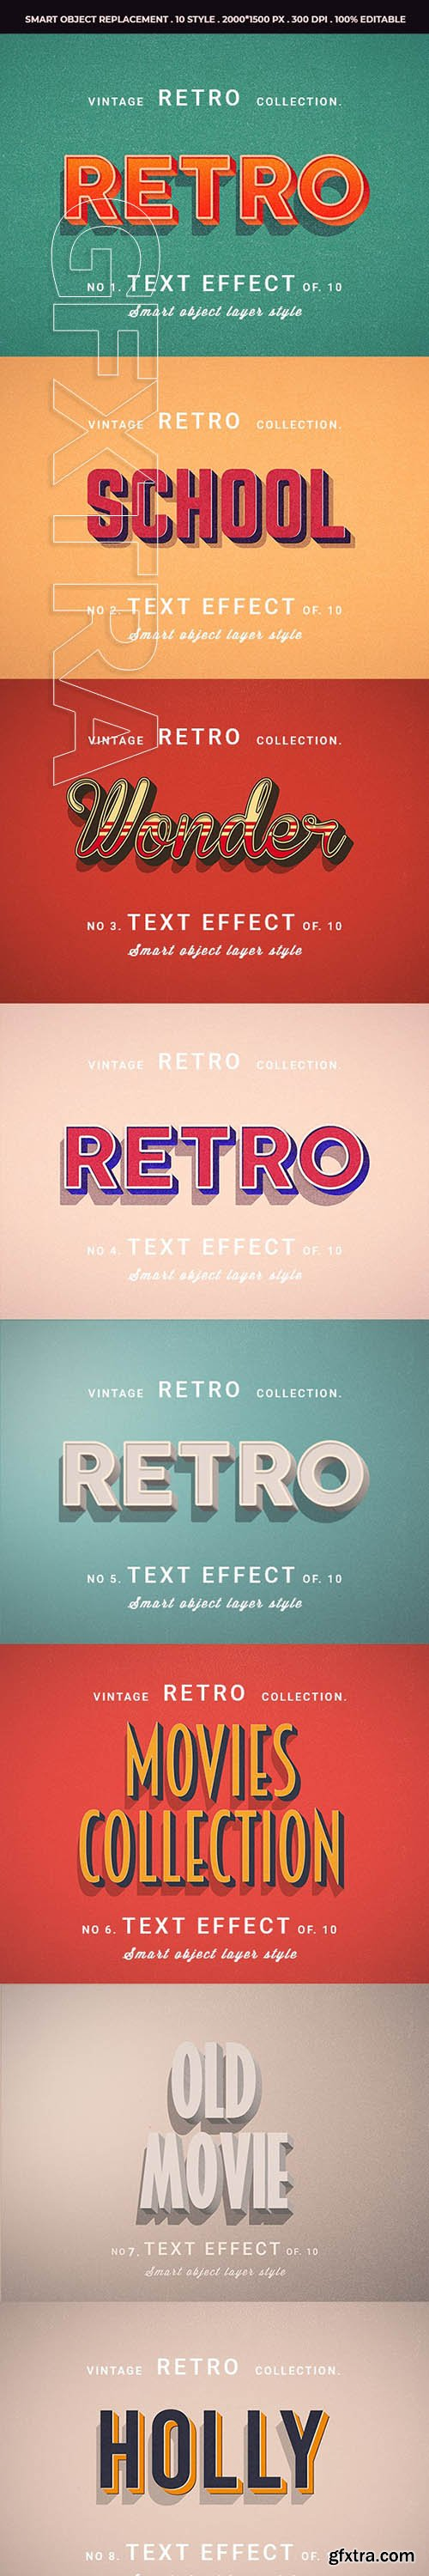 GraphicRiver - Retro Vintage Text Effects For Photoshop V1 25508009